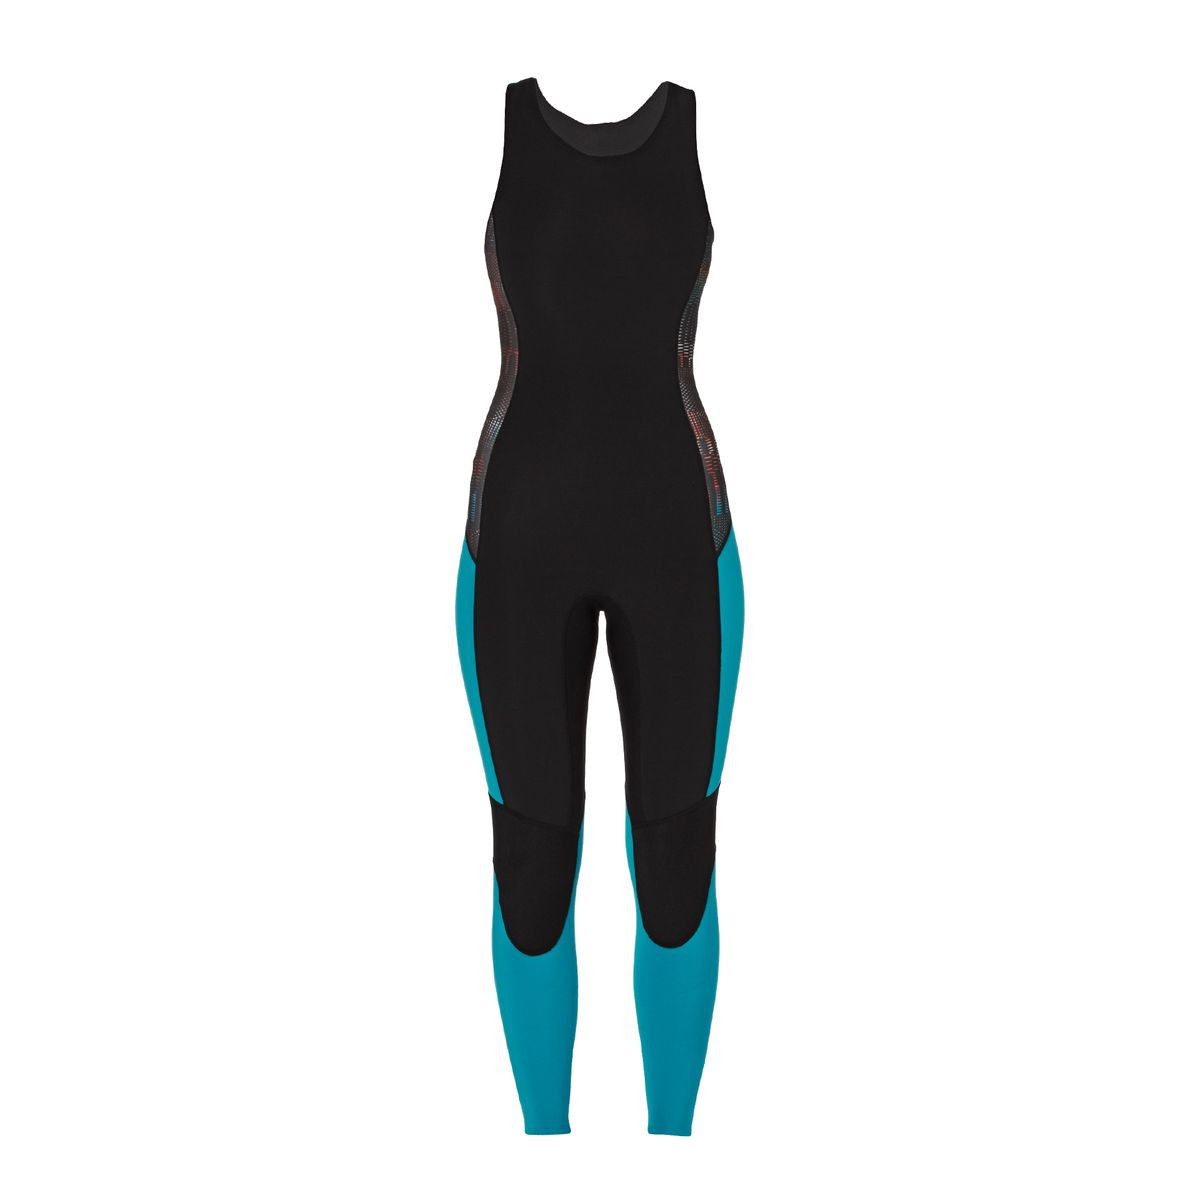 Patagonia Womens R1 1.5mm Zipperless Long Jane Wetsuit - Howling Turquoise